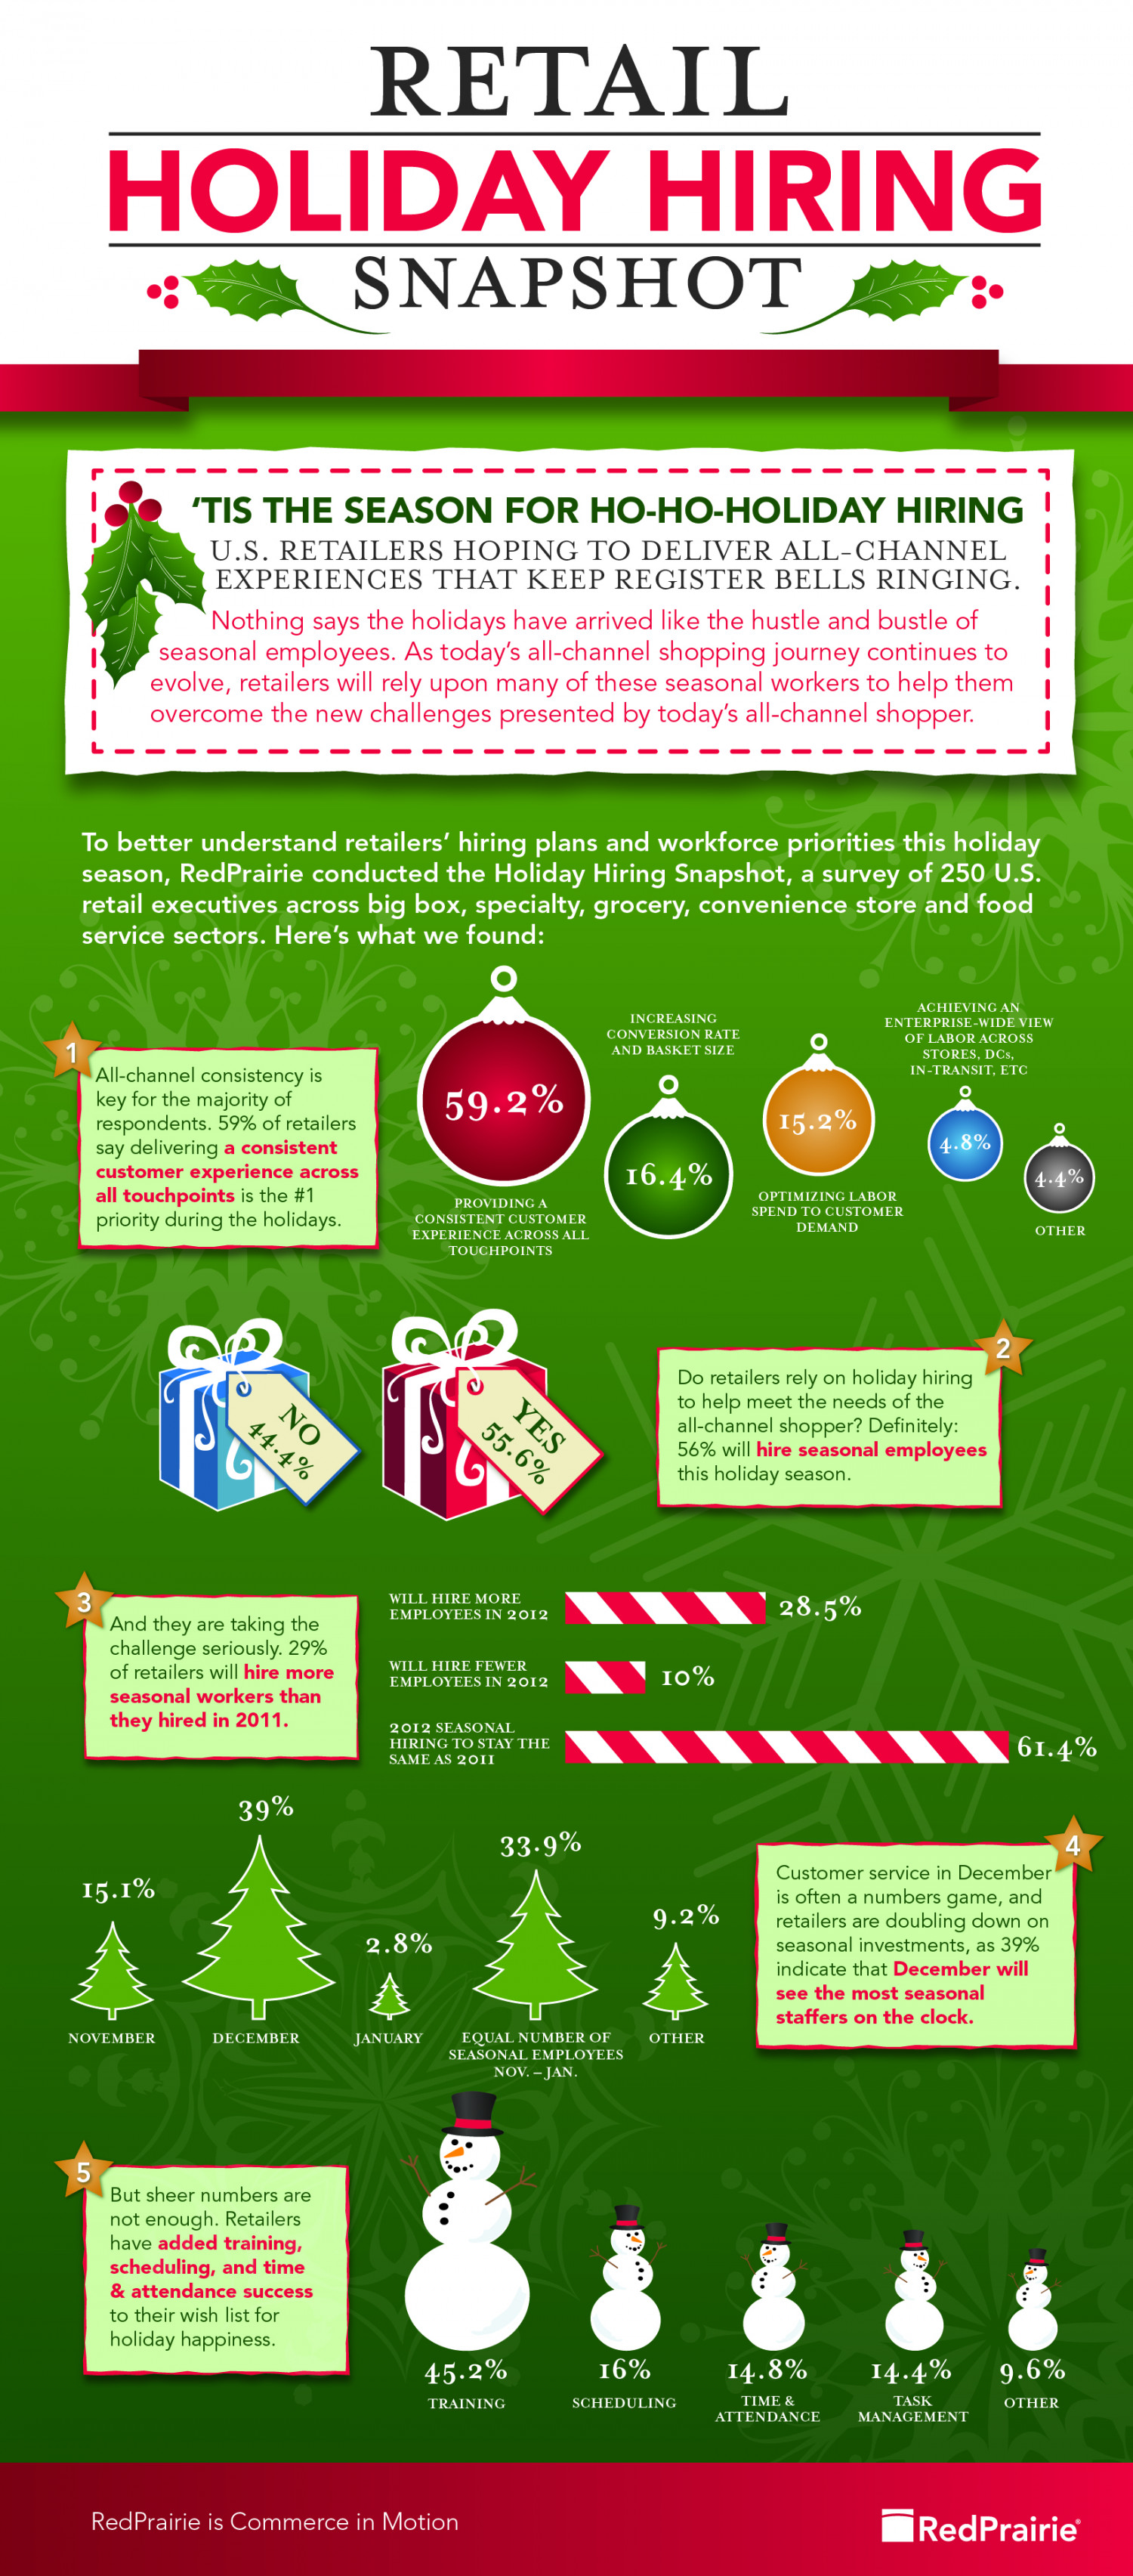 Holiday Hiring Snapshot 2012 Infographic